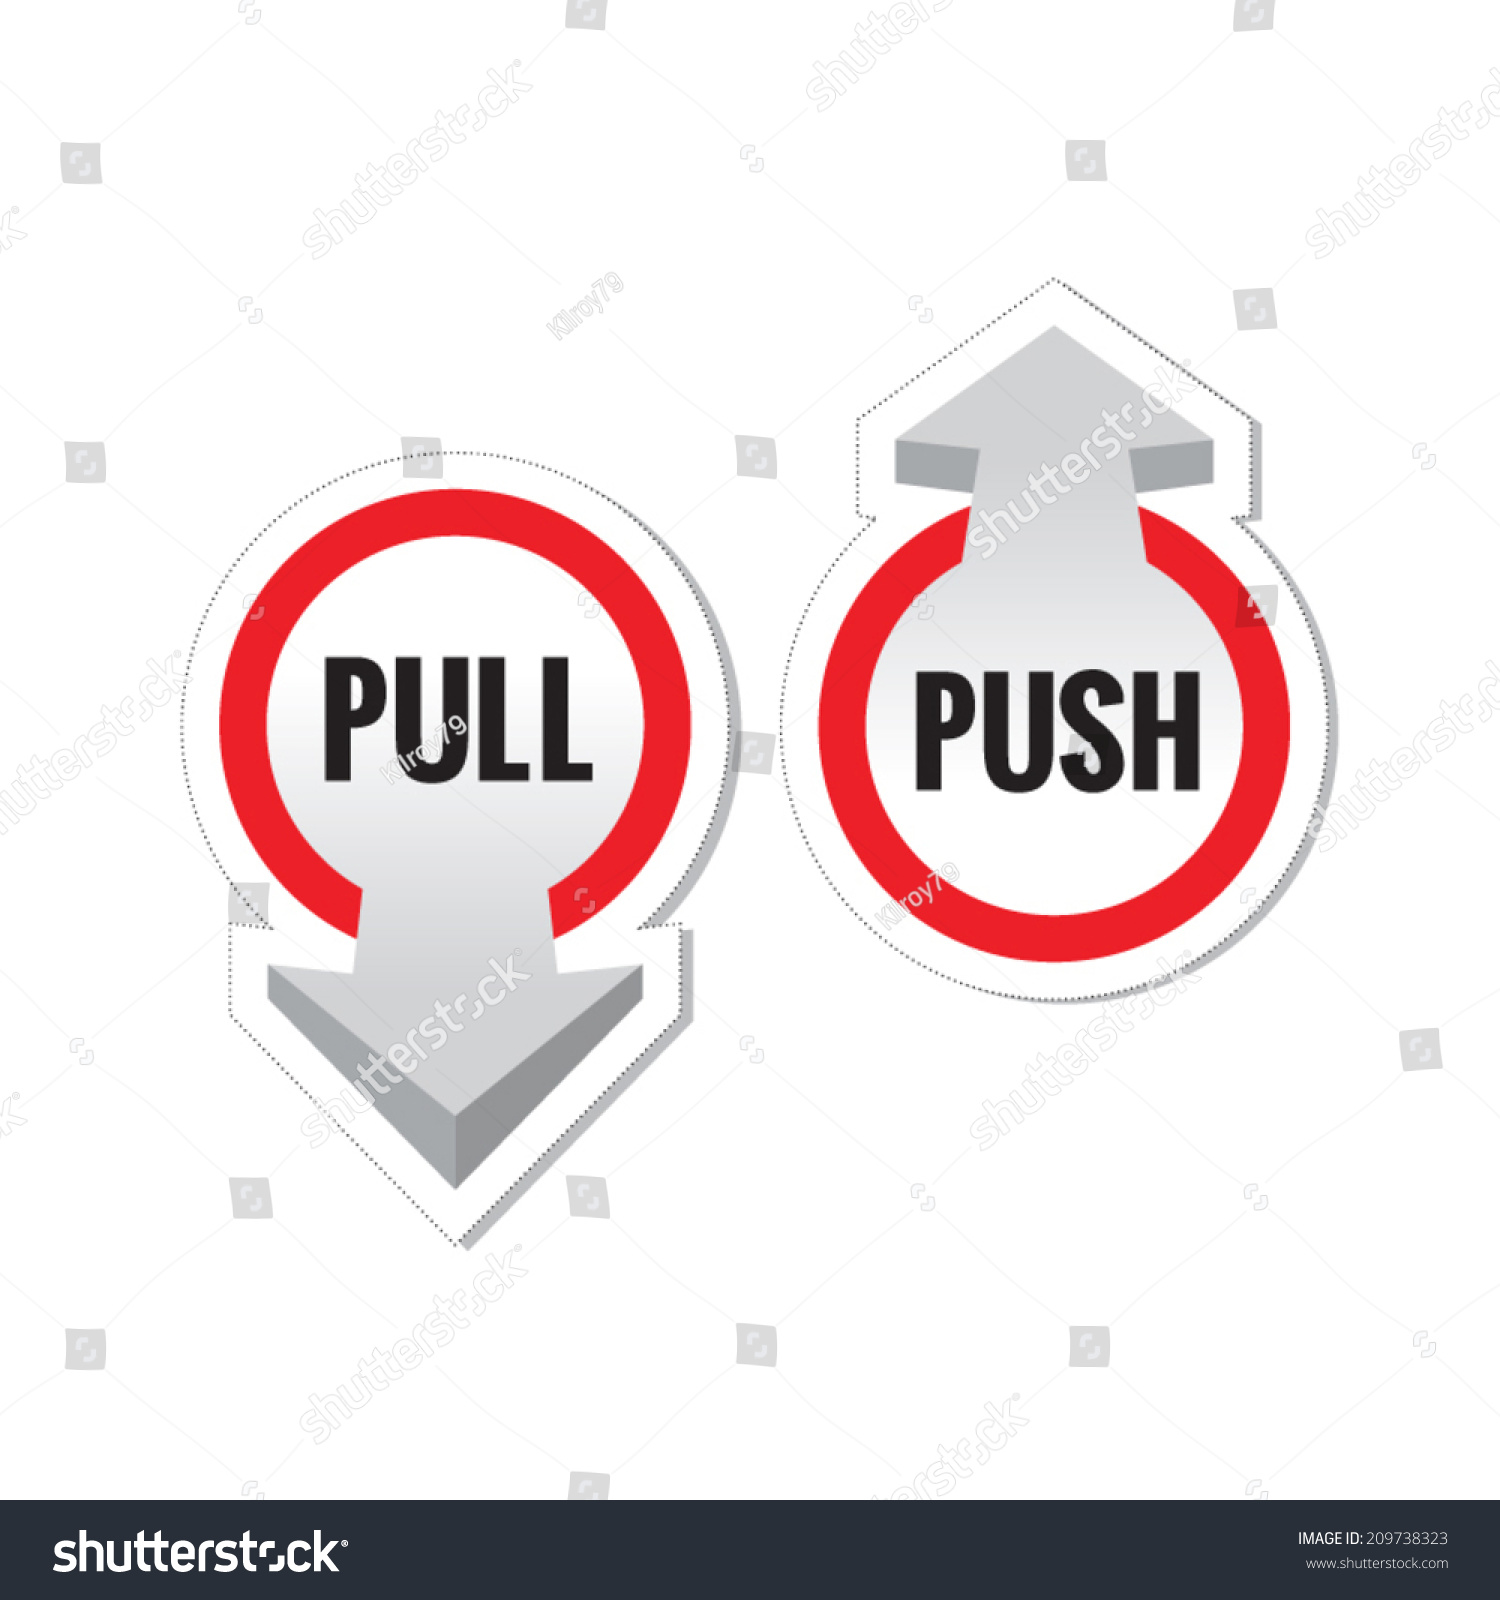 Pull Over Sign : Pull push door signs stickers set stock vector